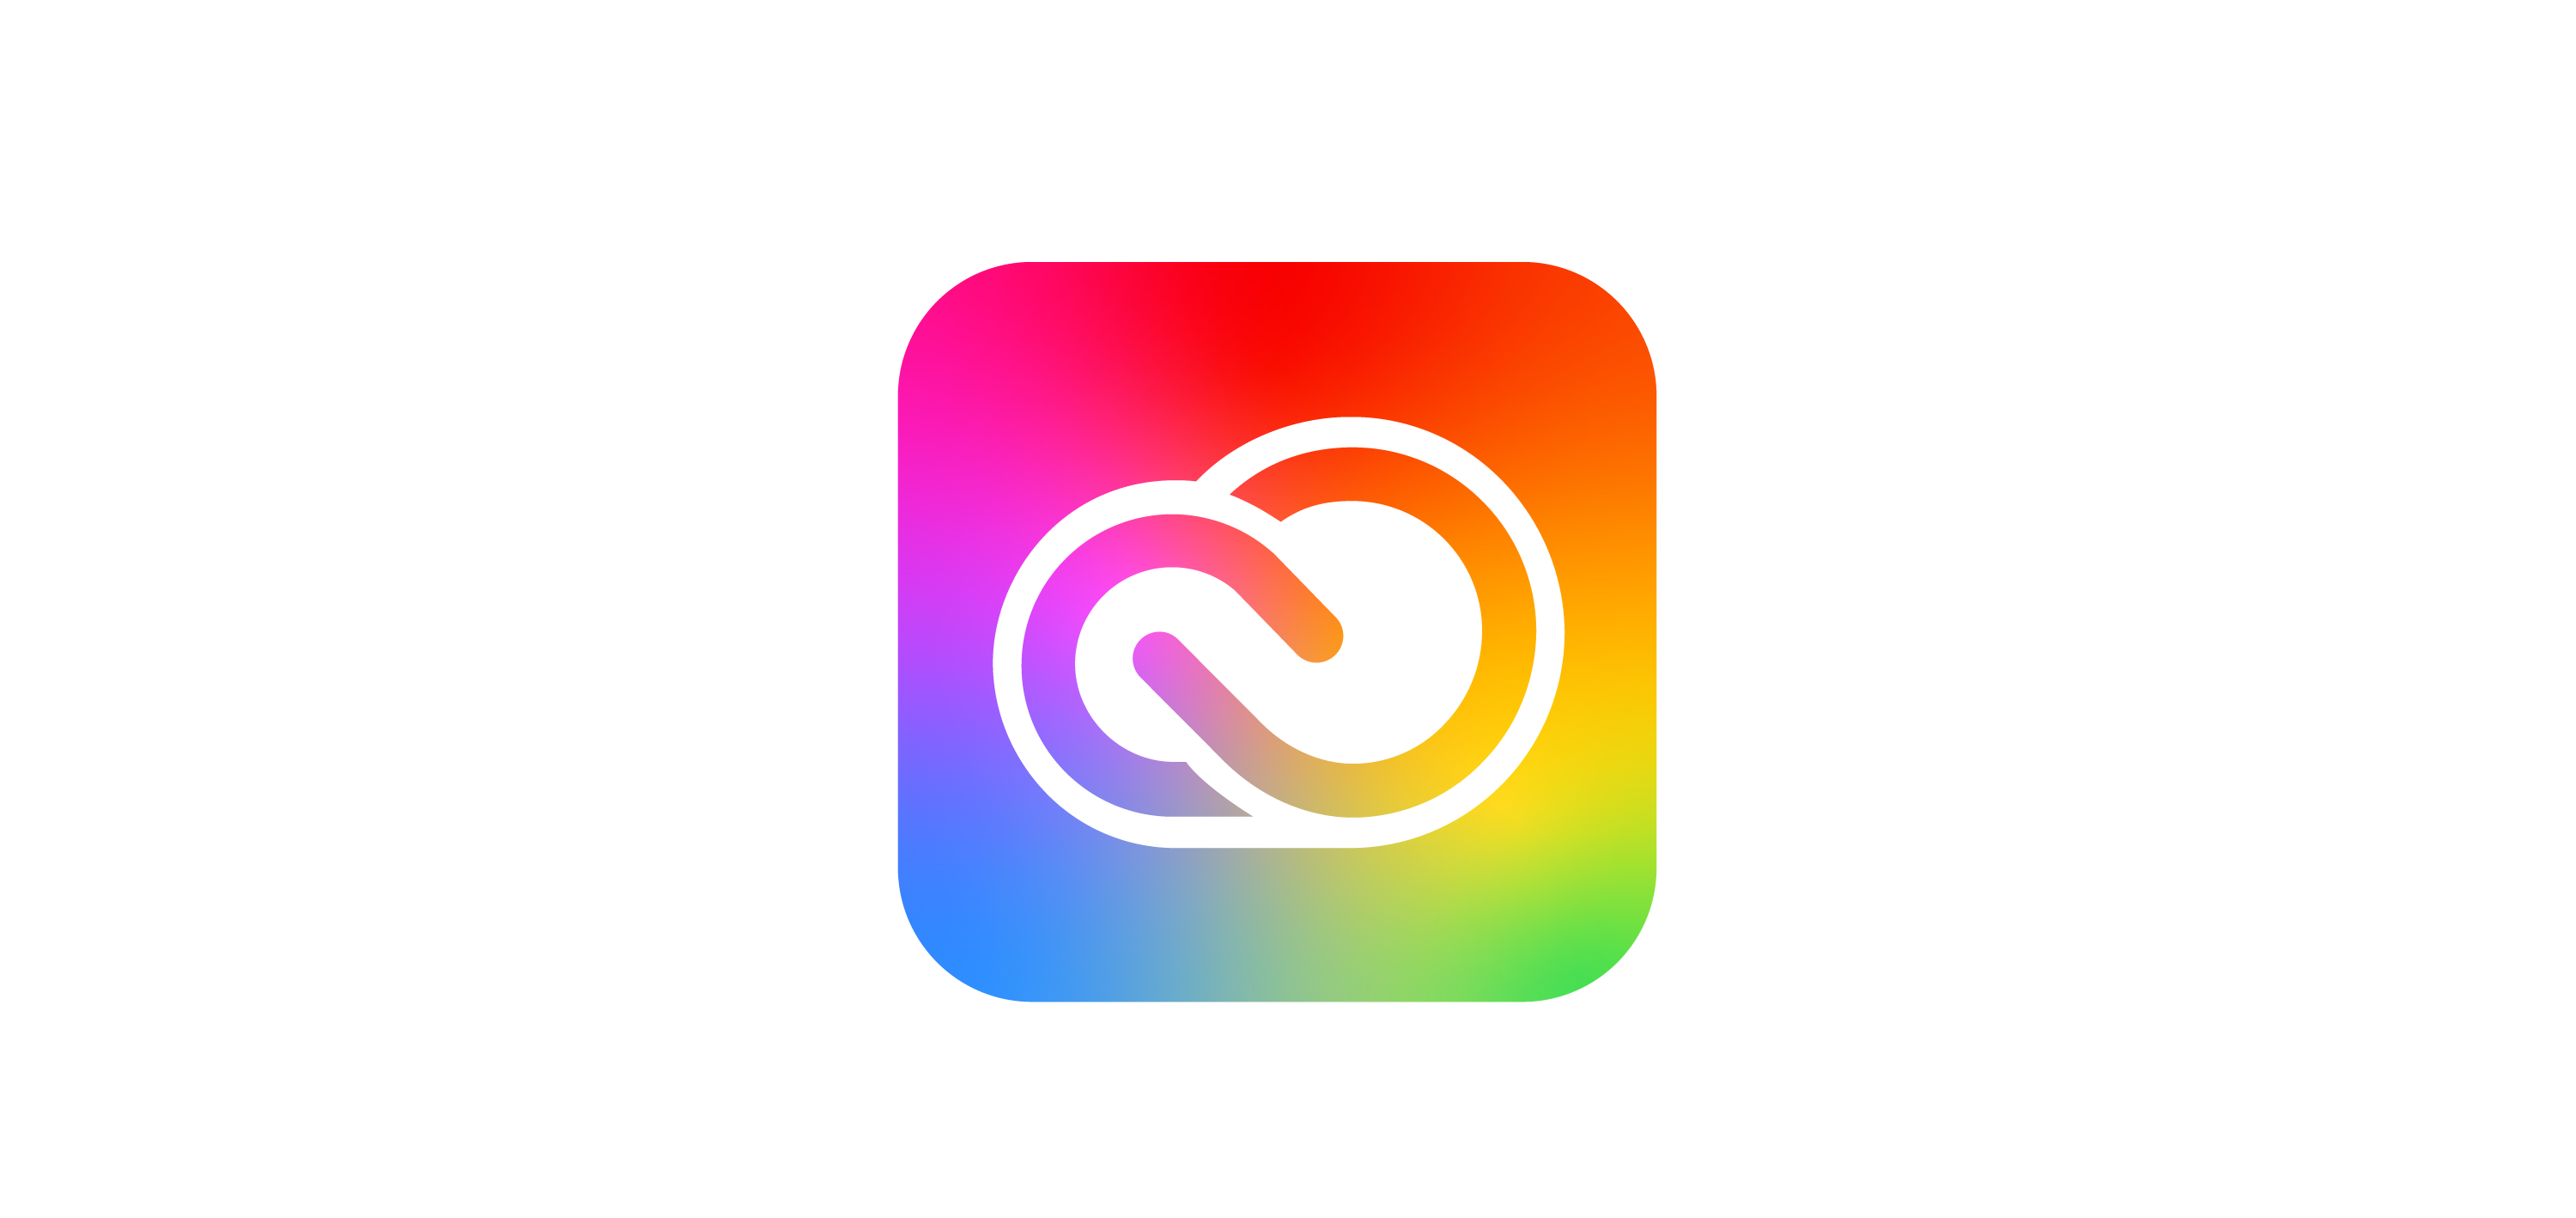 Creative Cloud 2020 Logo Vector